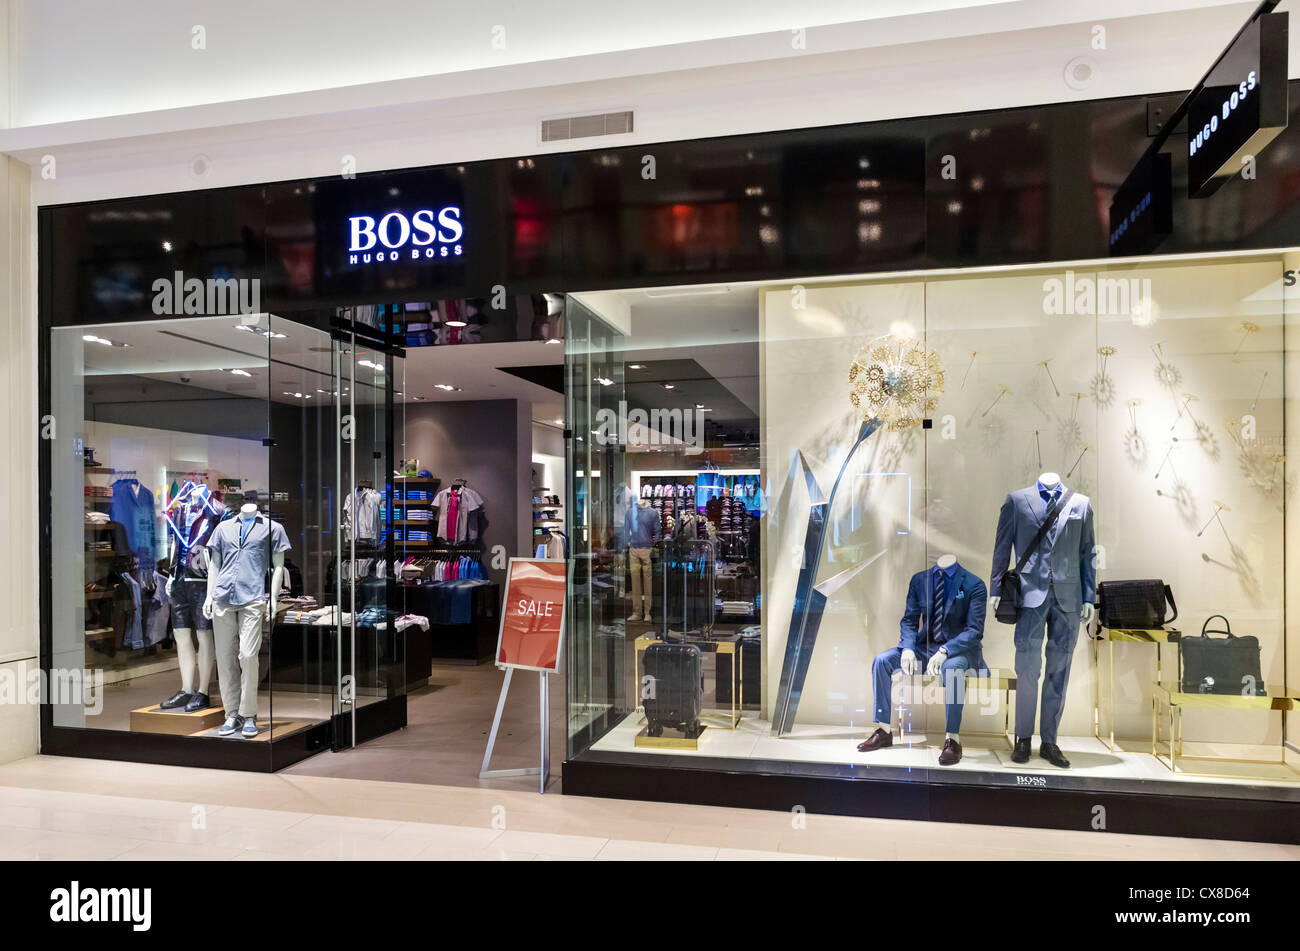 hugo boss store in the mall of america bloomington minneapolis stock photo royalty free image. Black Bedroom Furniture Sets. Home Design Ideas